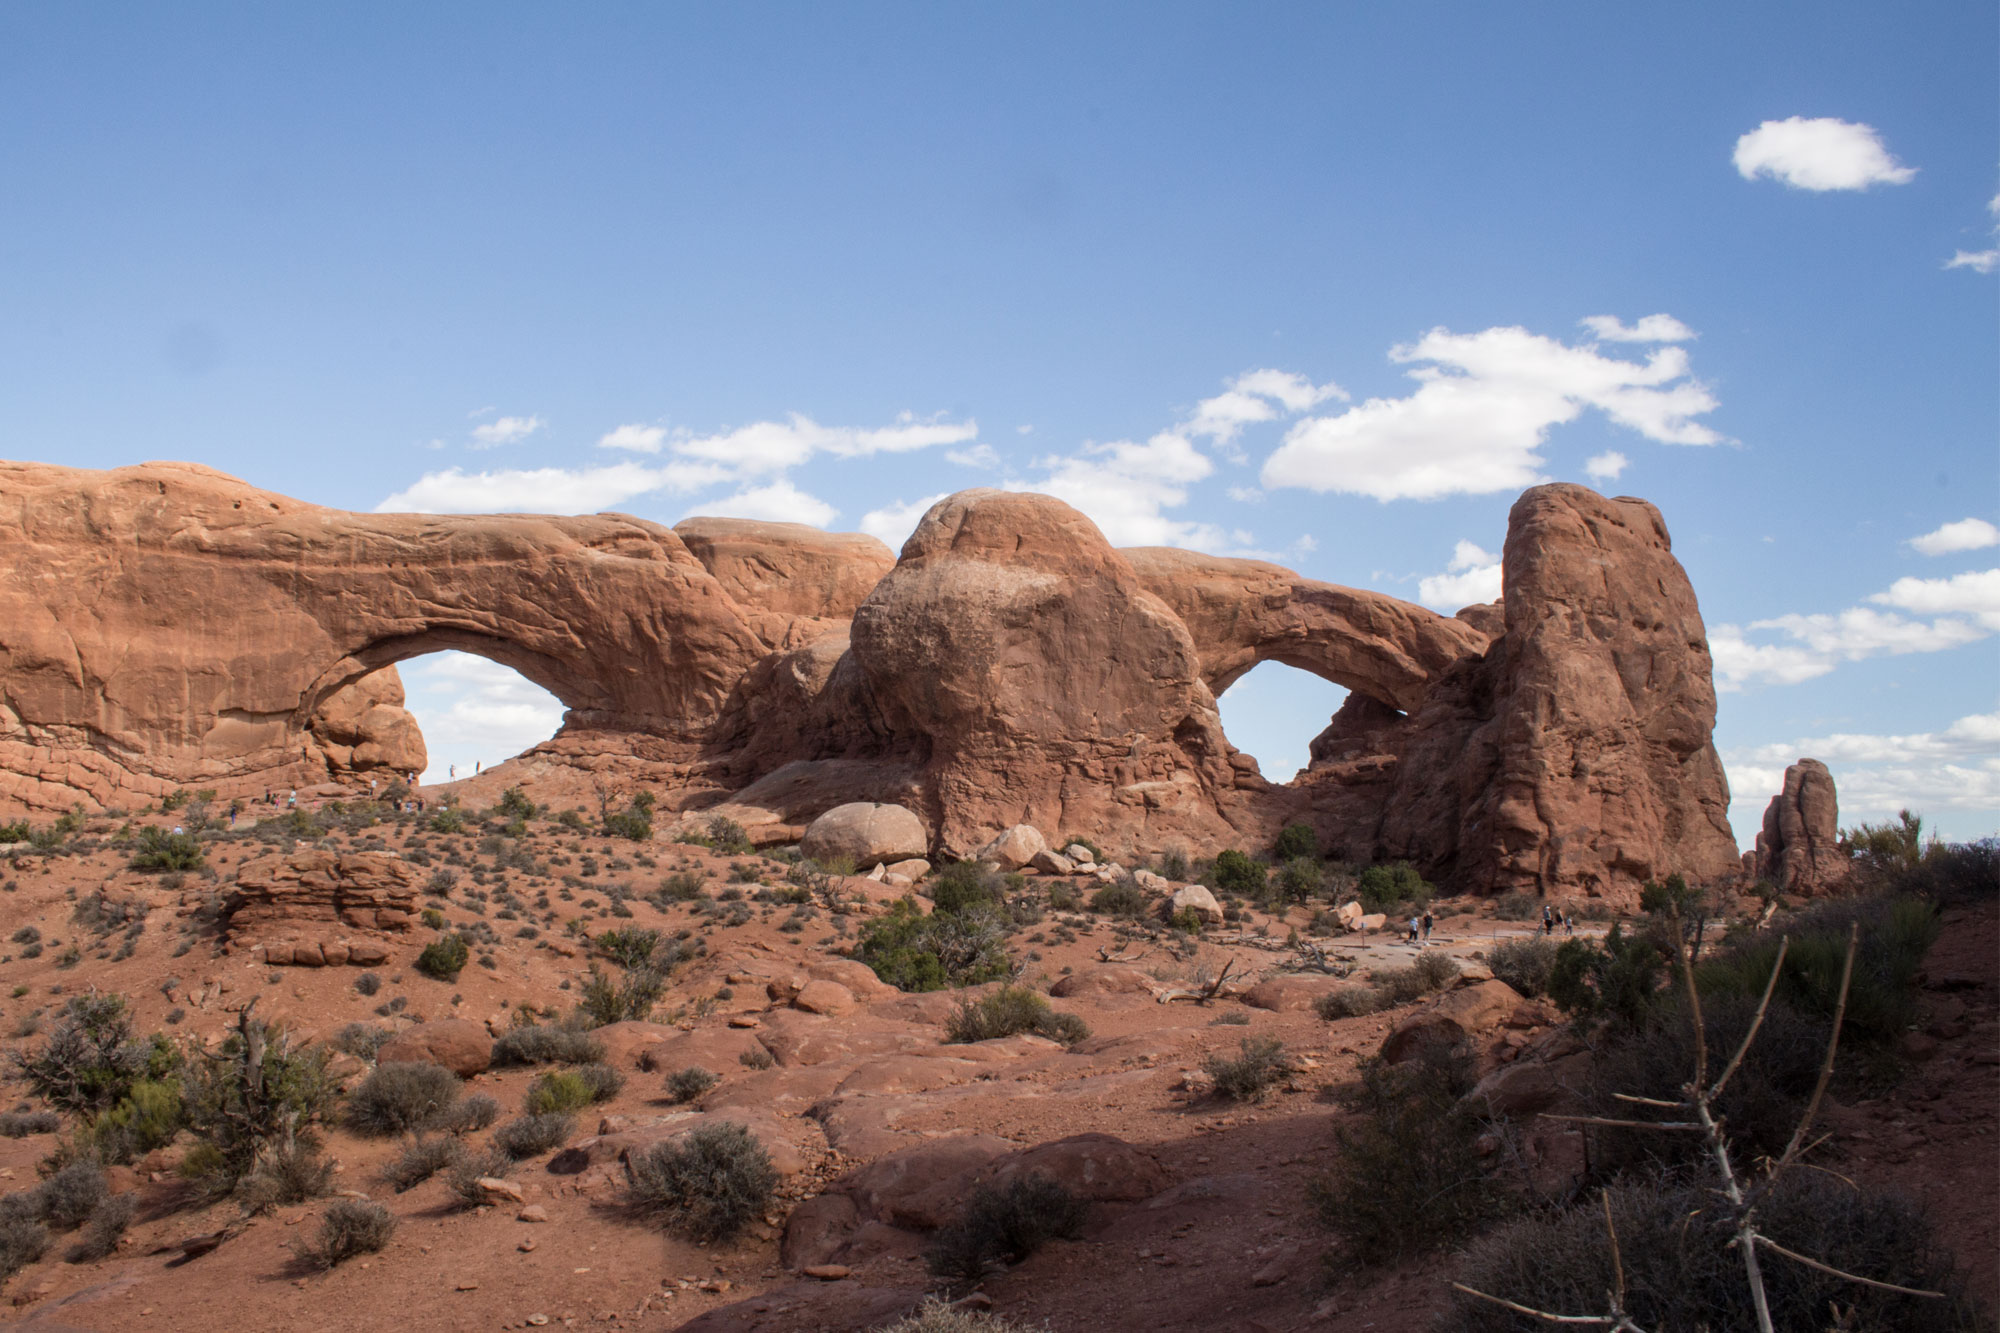 The Spectacles, Arches National Park